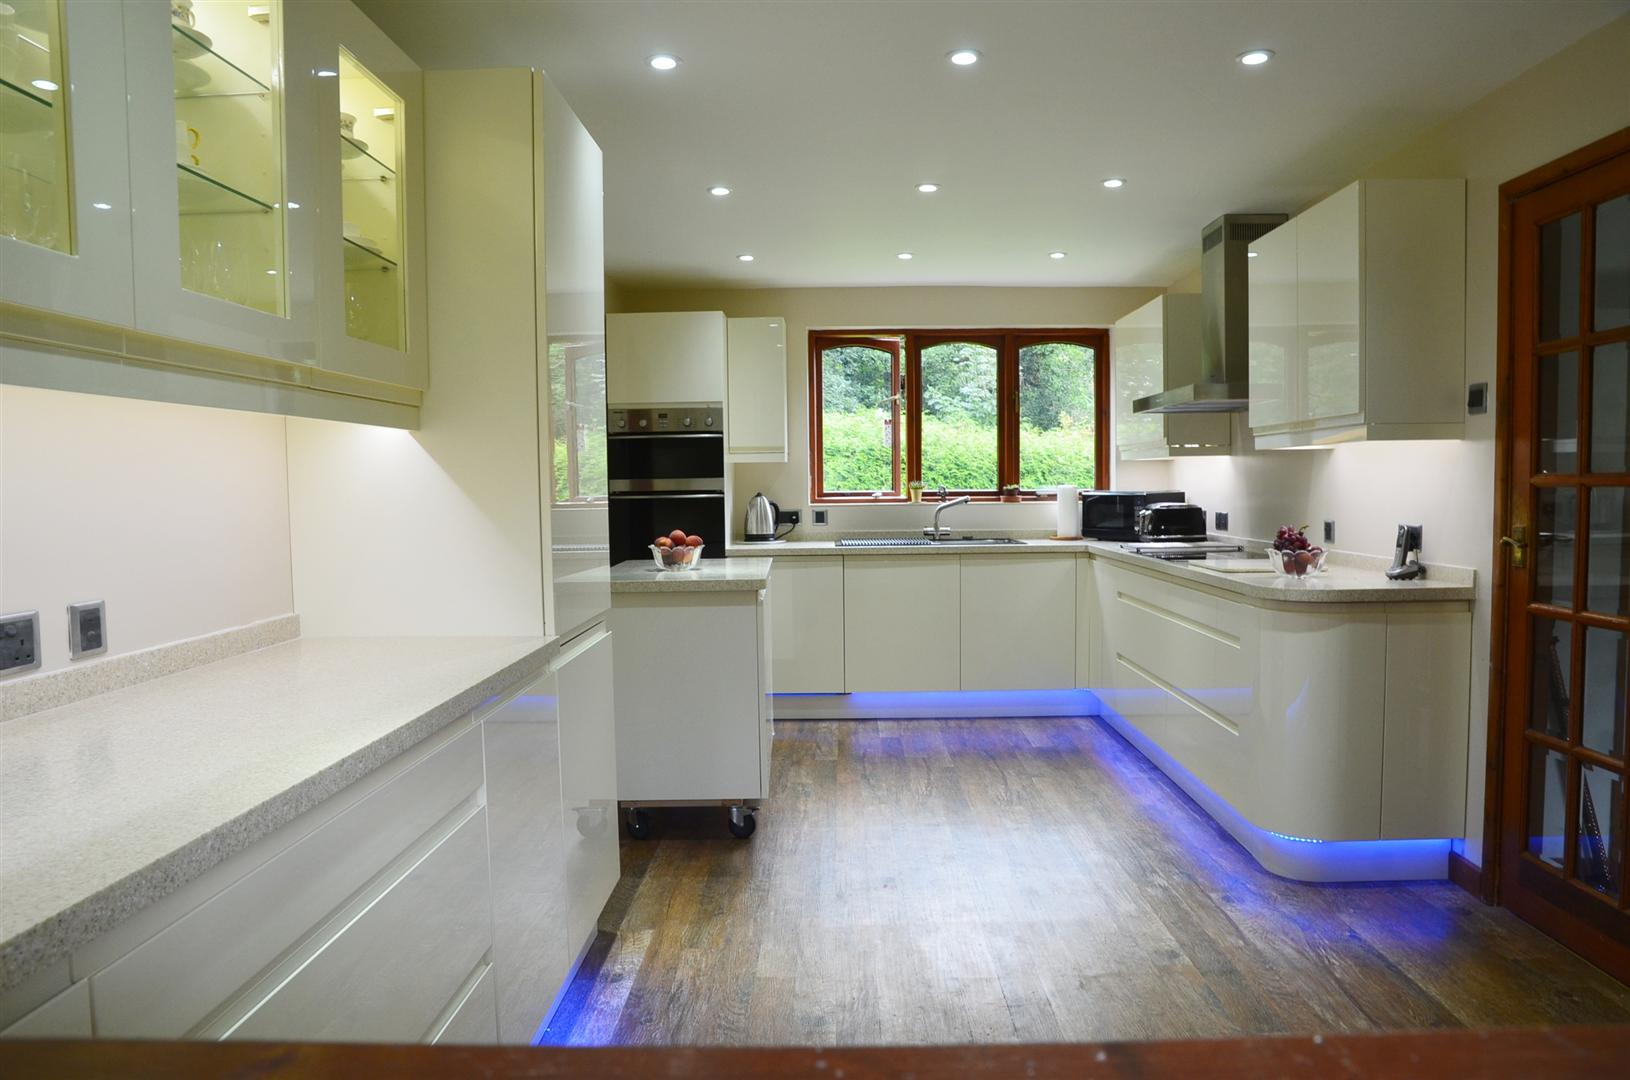 Kitchen Floor Lights Niceic Domestic Electricians In Cheshire Northwich Knutsford